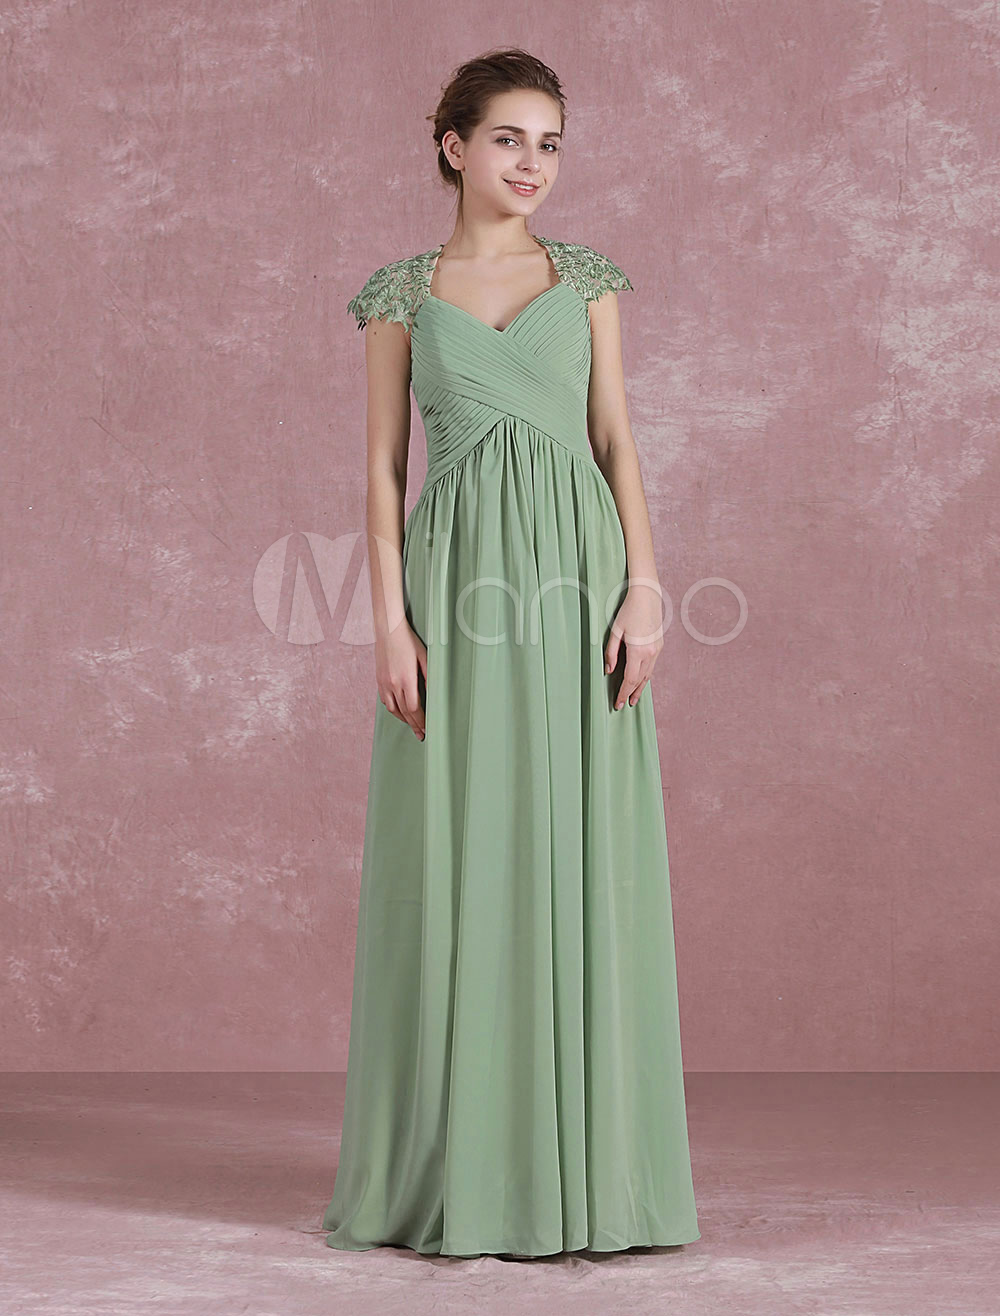 Chiffon Evening Dress Pleated Floor Length Party Dress Queen Anne Neck Backless Vintage Long Bridesmaid Dress